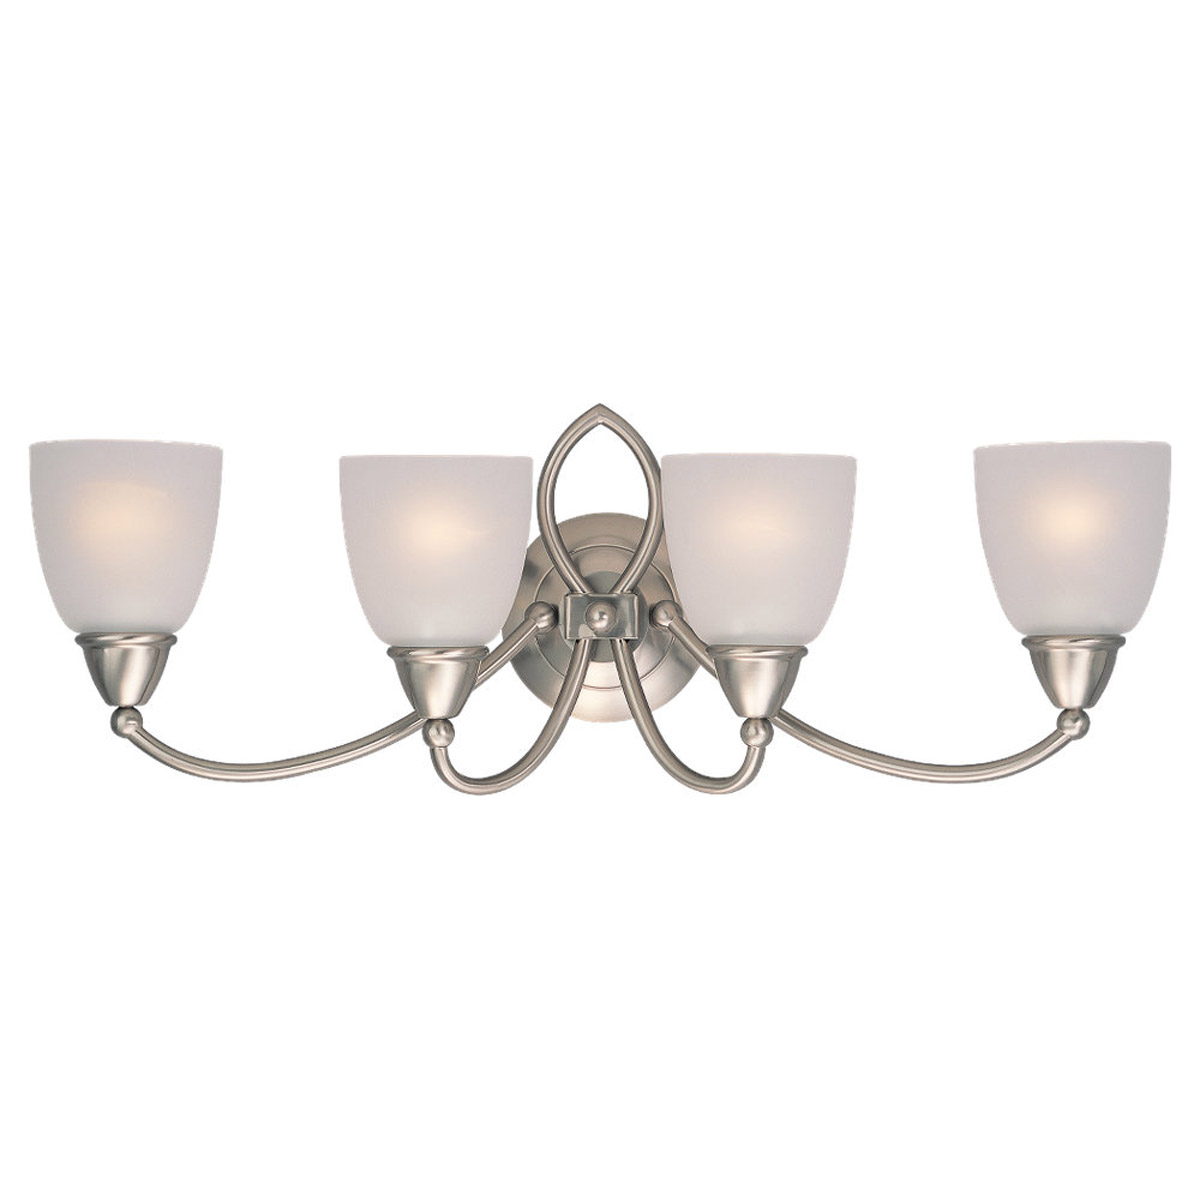 Sea Gull Lighting Pemberton 4 Light Bath Vanity in Brushed Nickel 40076-962